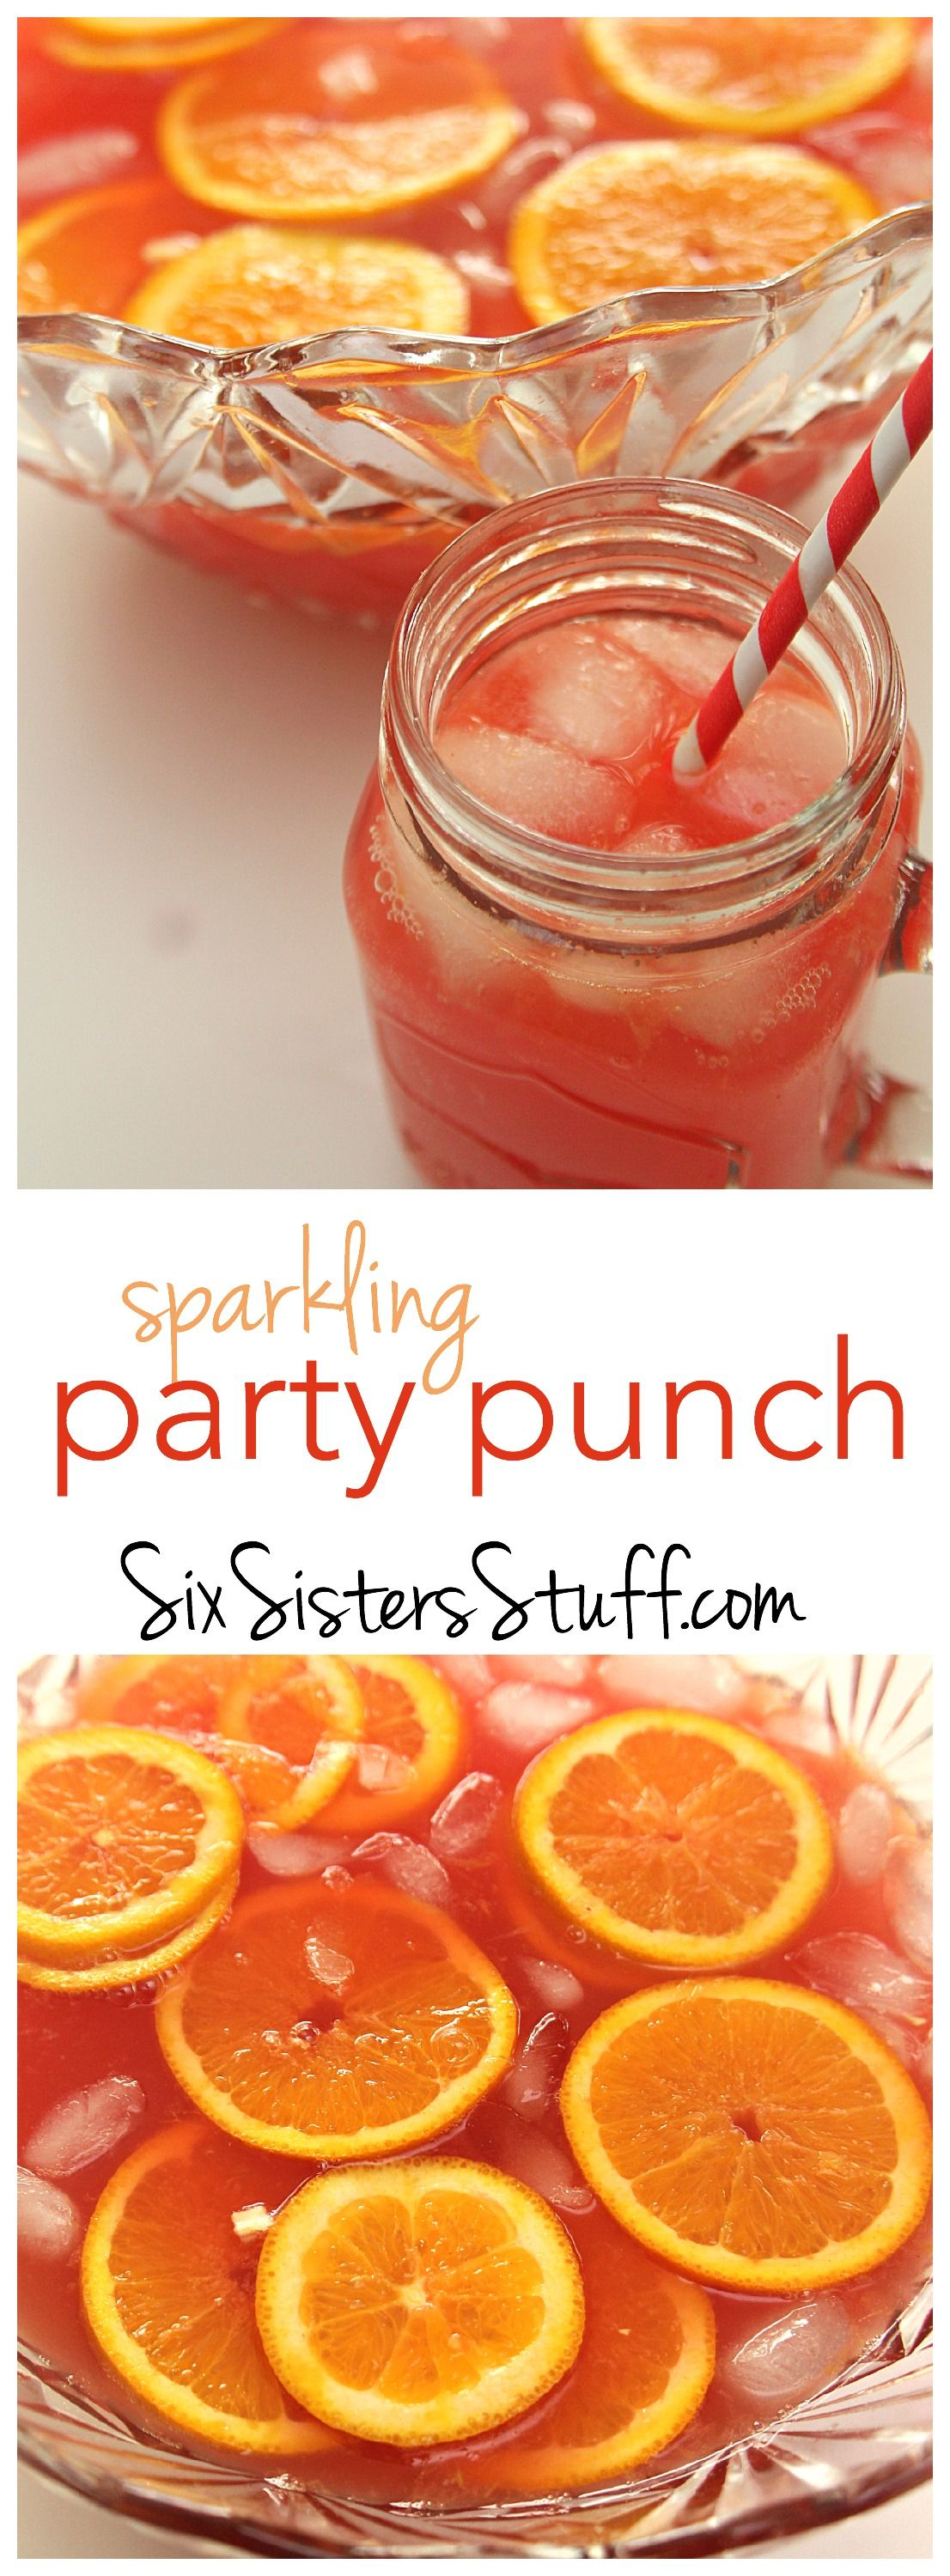 Sparkling Red Party Punch Recipe